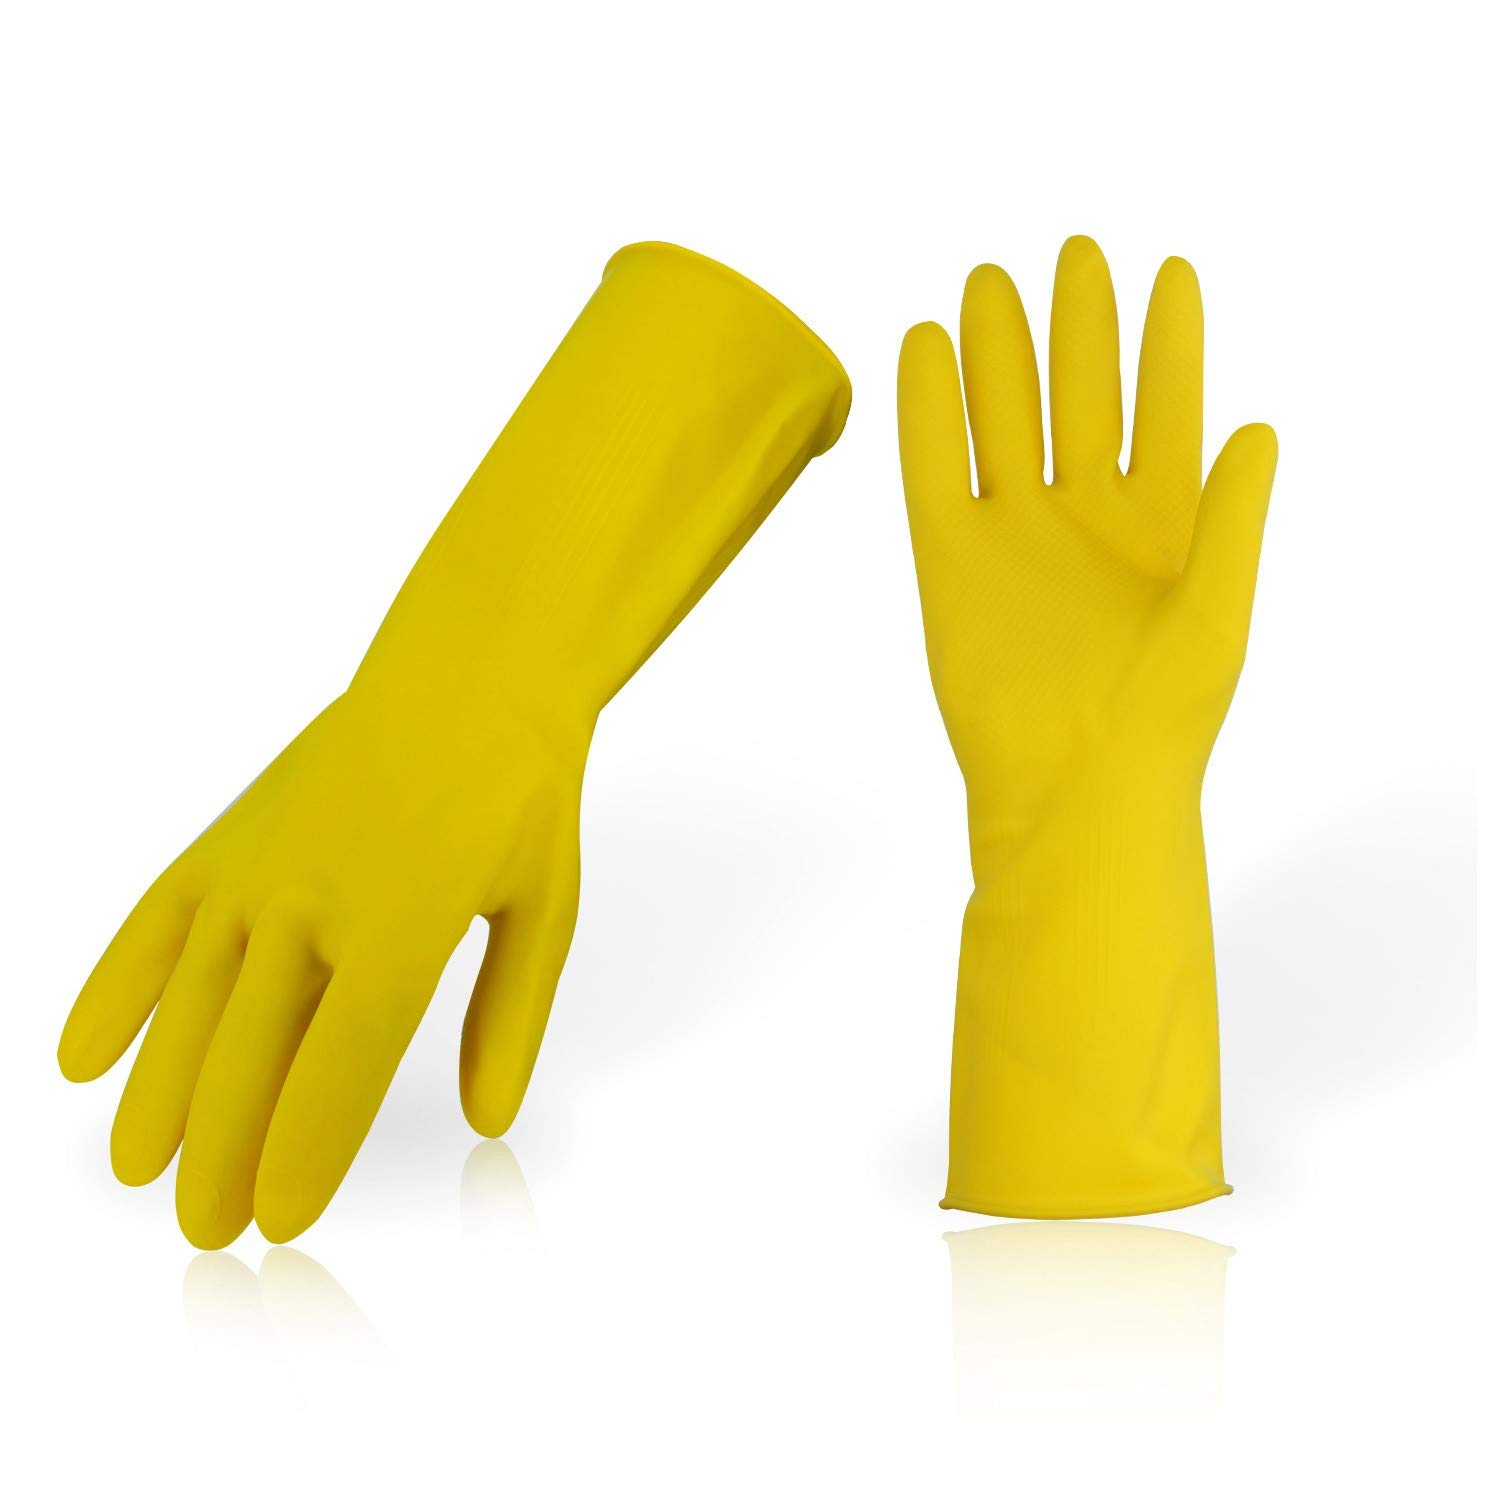 Vgo 10 Pairs Reusable Household Cleaning Dishwashing Kitchen Glove, Long Sleeve Thick Latex Working, Painting, Gardening Gloves,Pet Care(10 Pairs,Size M,Yellow,HH4601)